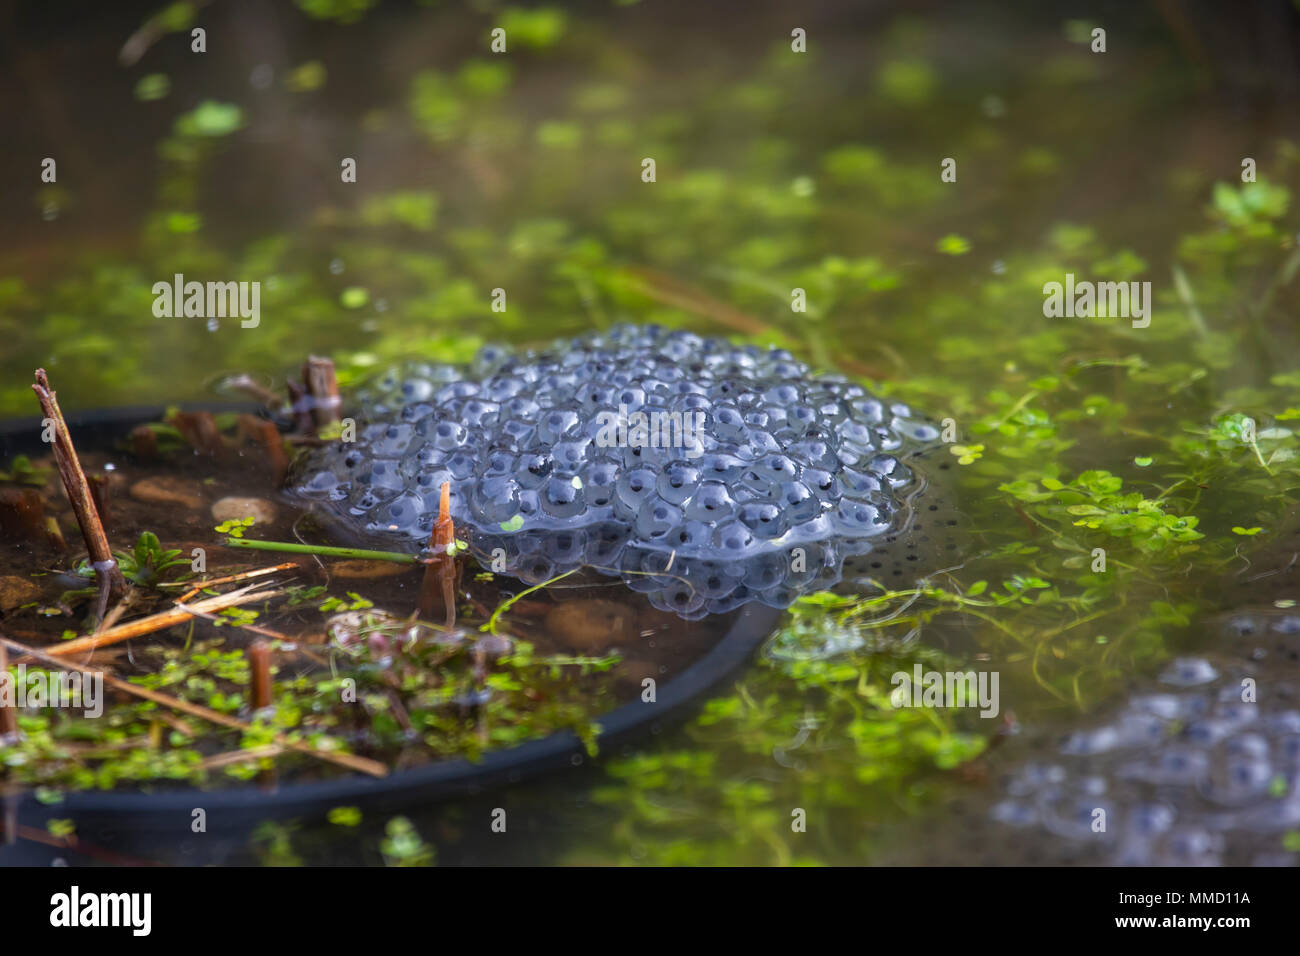 Common frog spawn in domestic garden pond - Stock Image